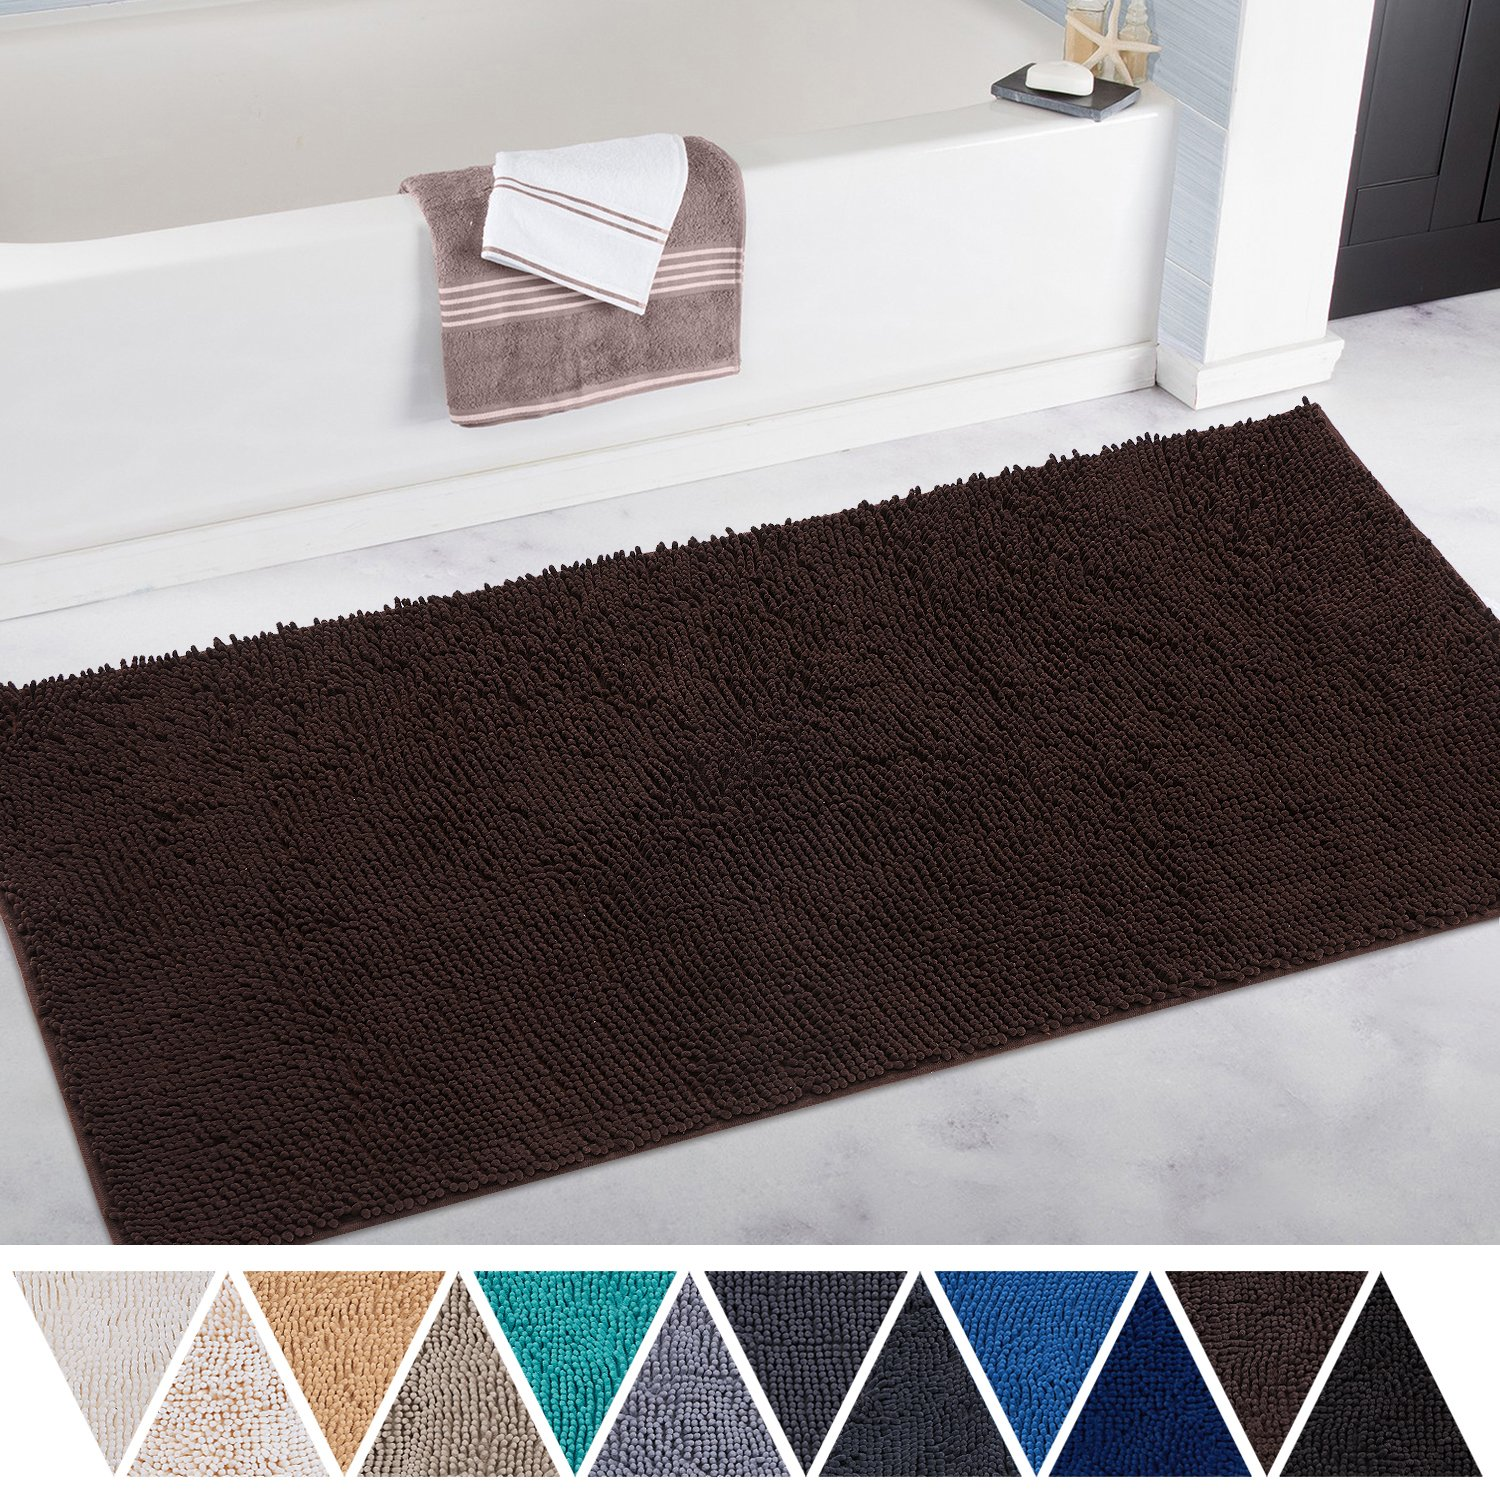 DEARTOWN Non-Slip Thick Microfiber Bathroom Rugs 27.5x47 Inches, Dark Gray Machine-Washable Bath Mats with Water Absorbent